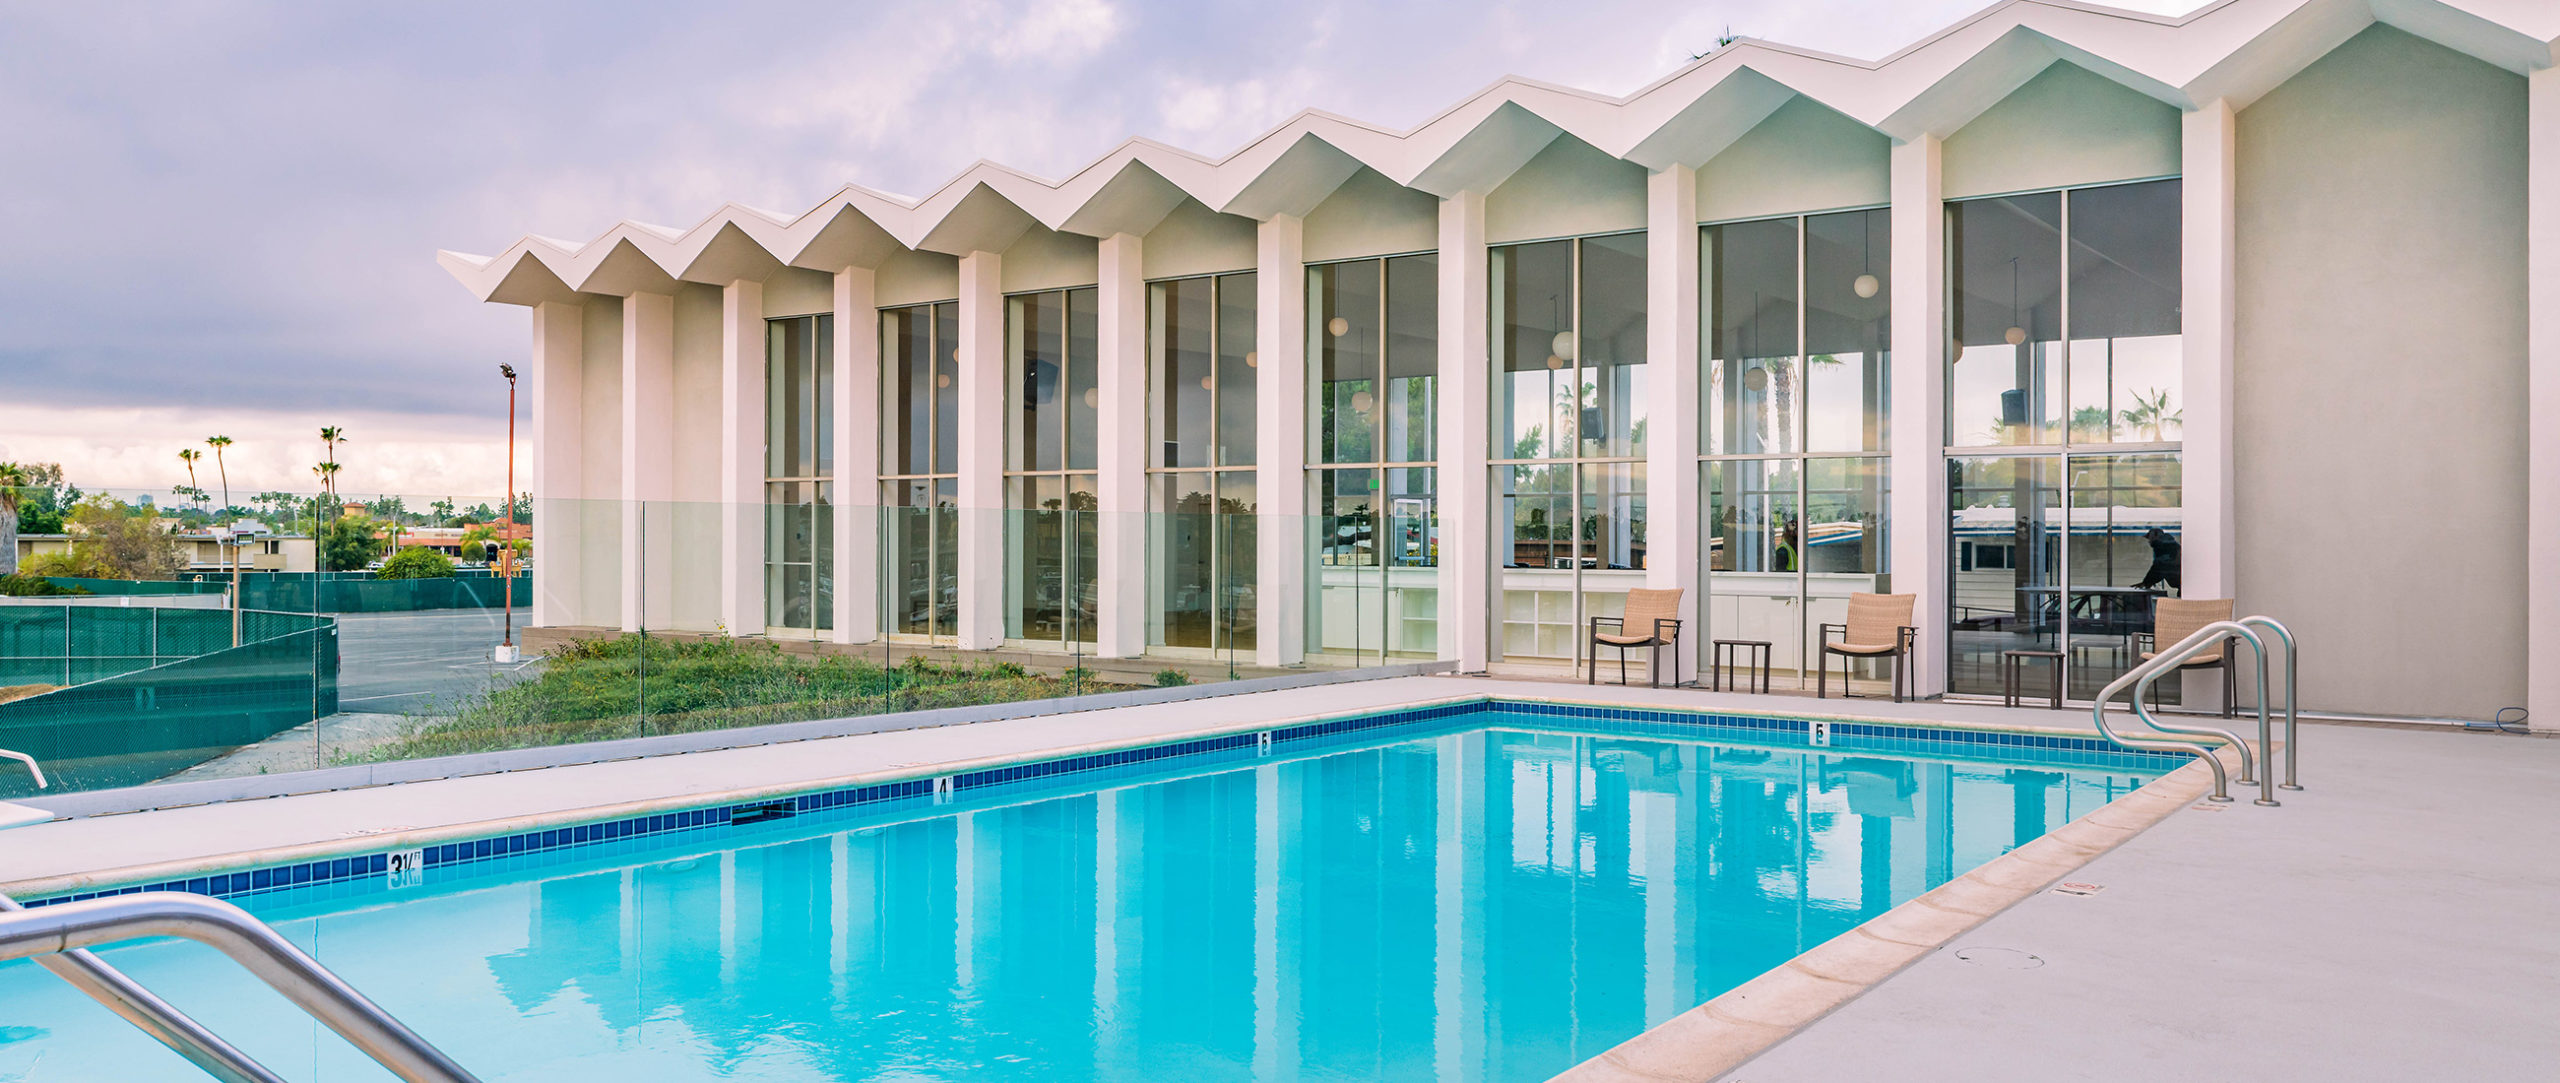 Clubhouse ballroom and pool